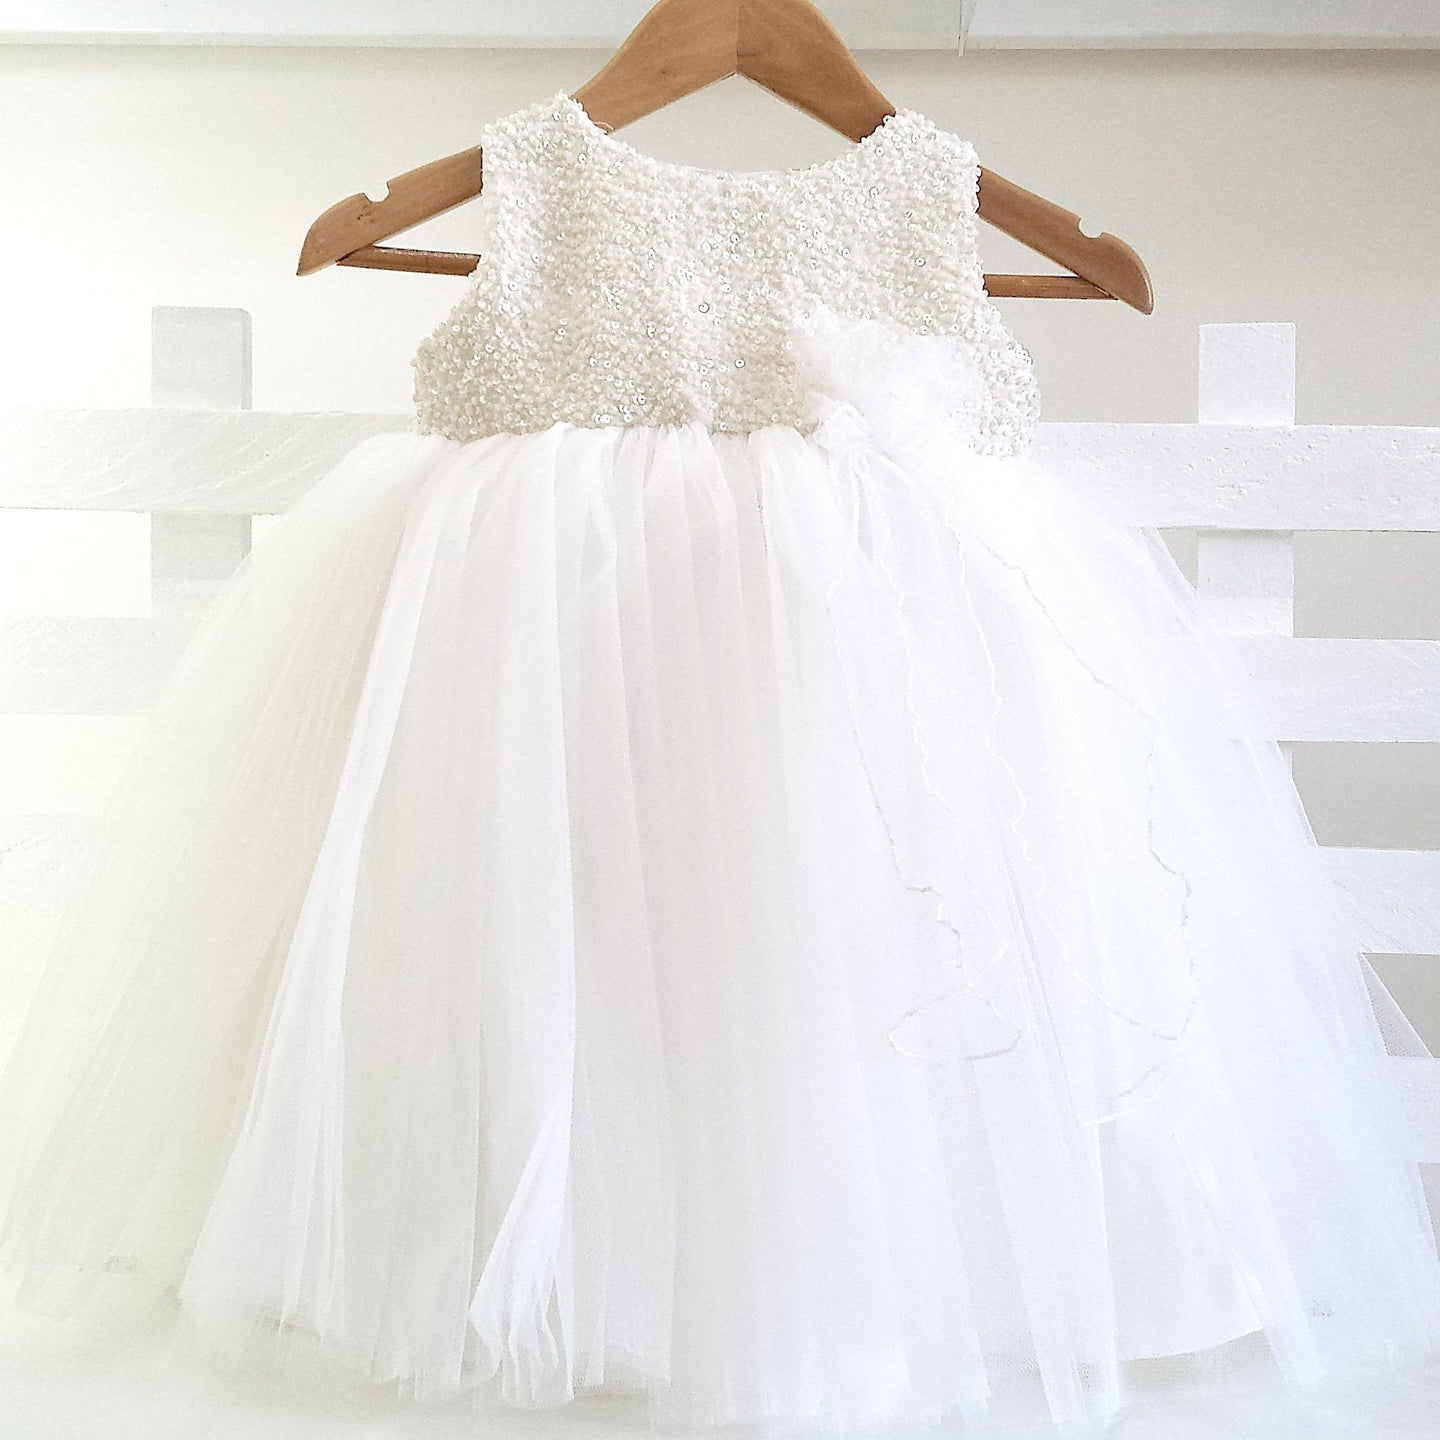 bellarina-handmade-girls-christening-dress